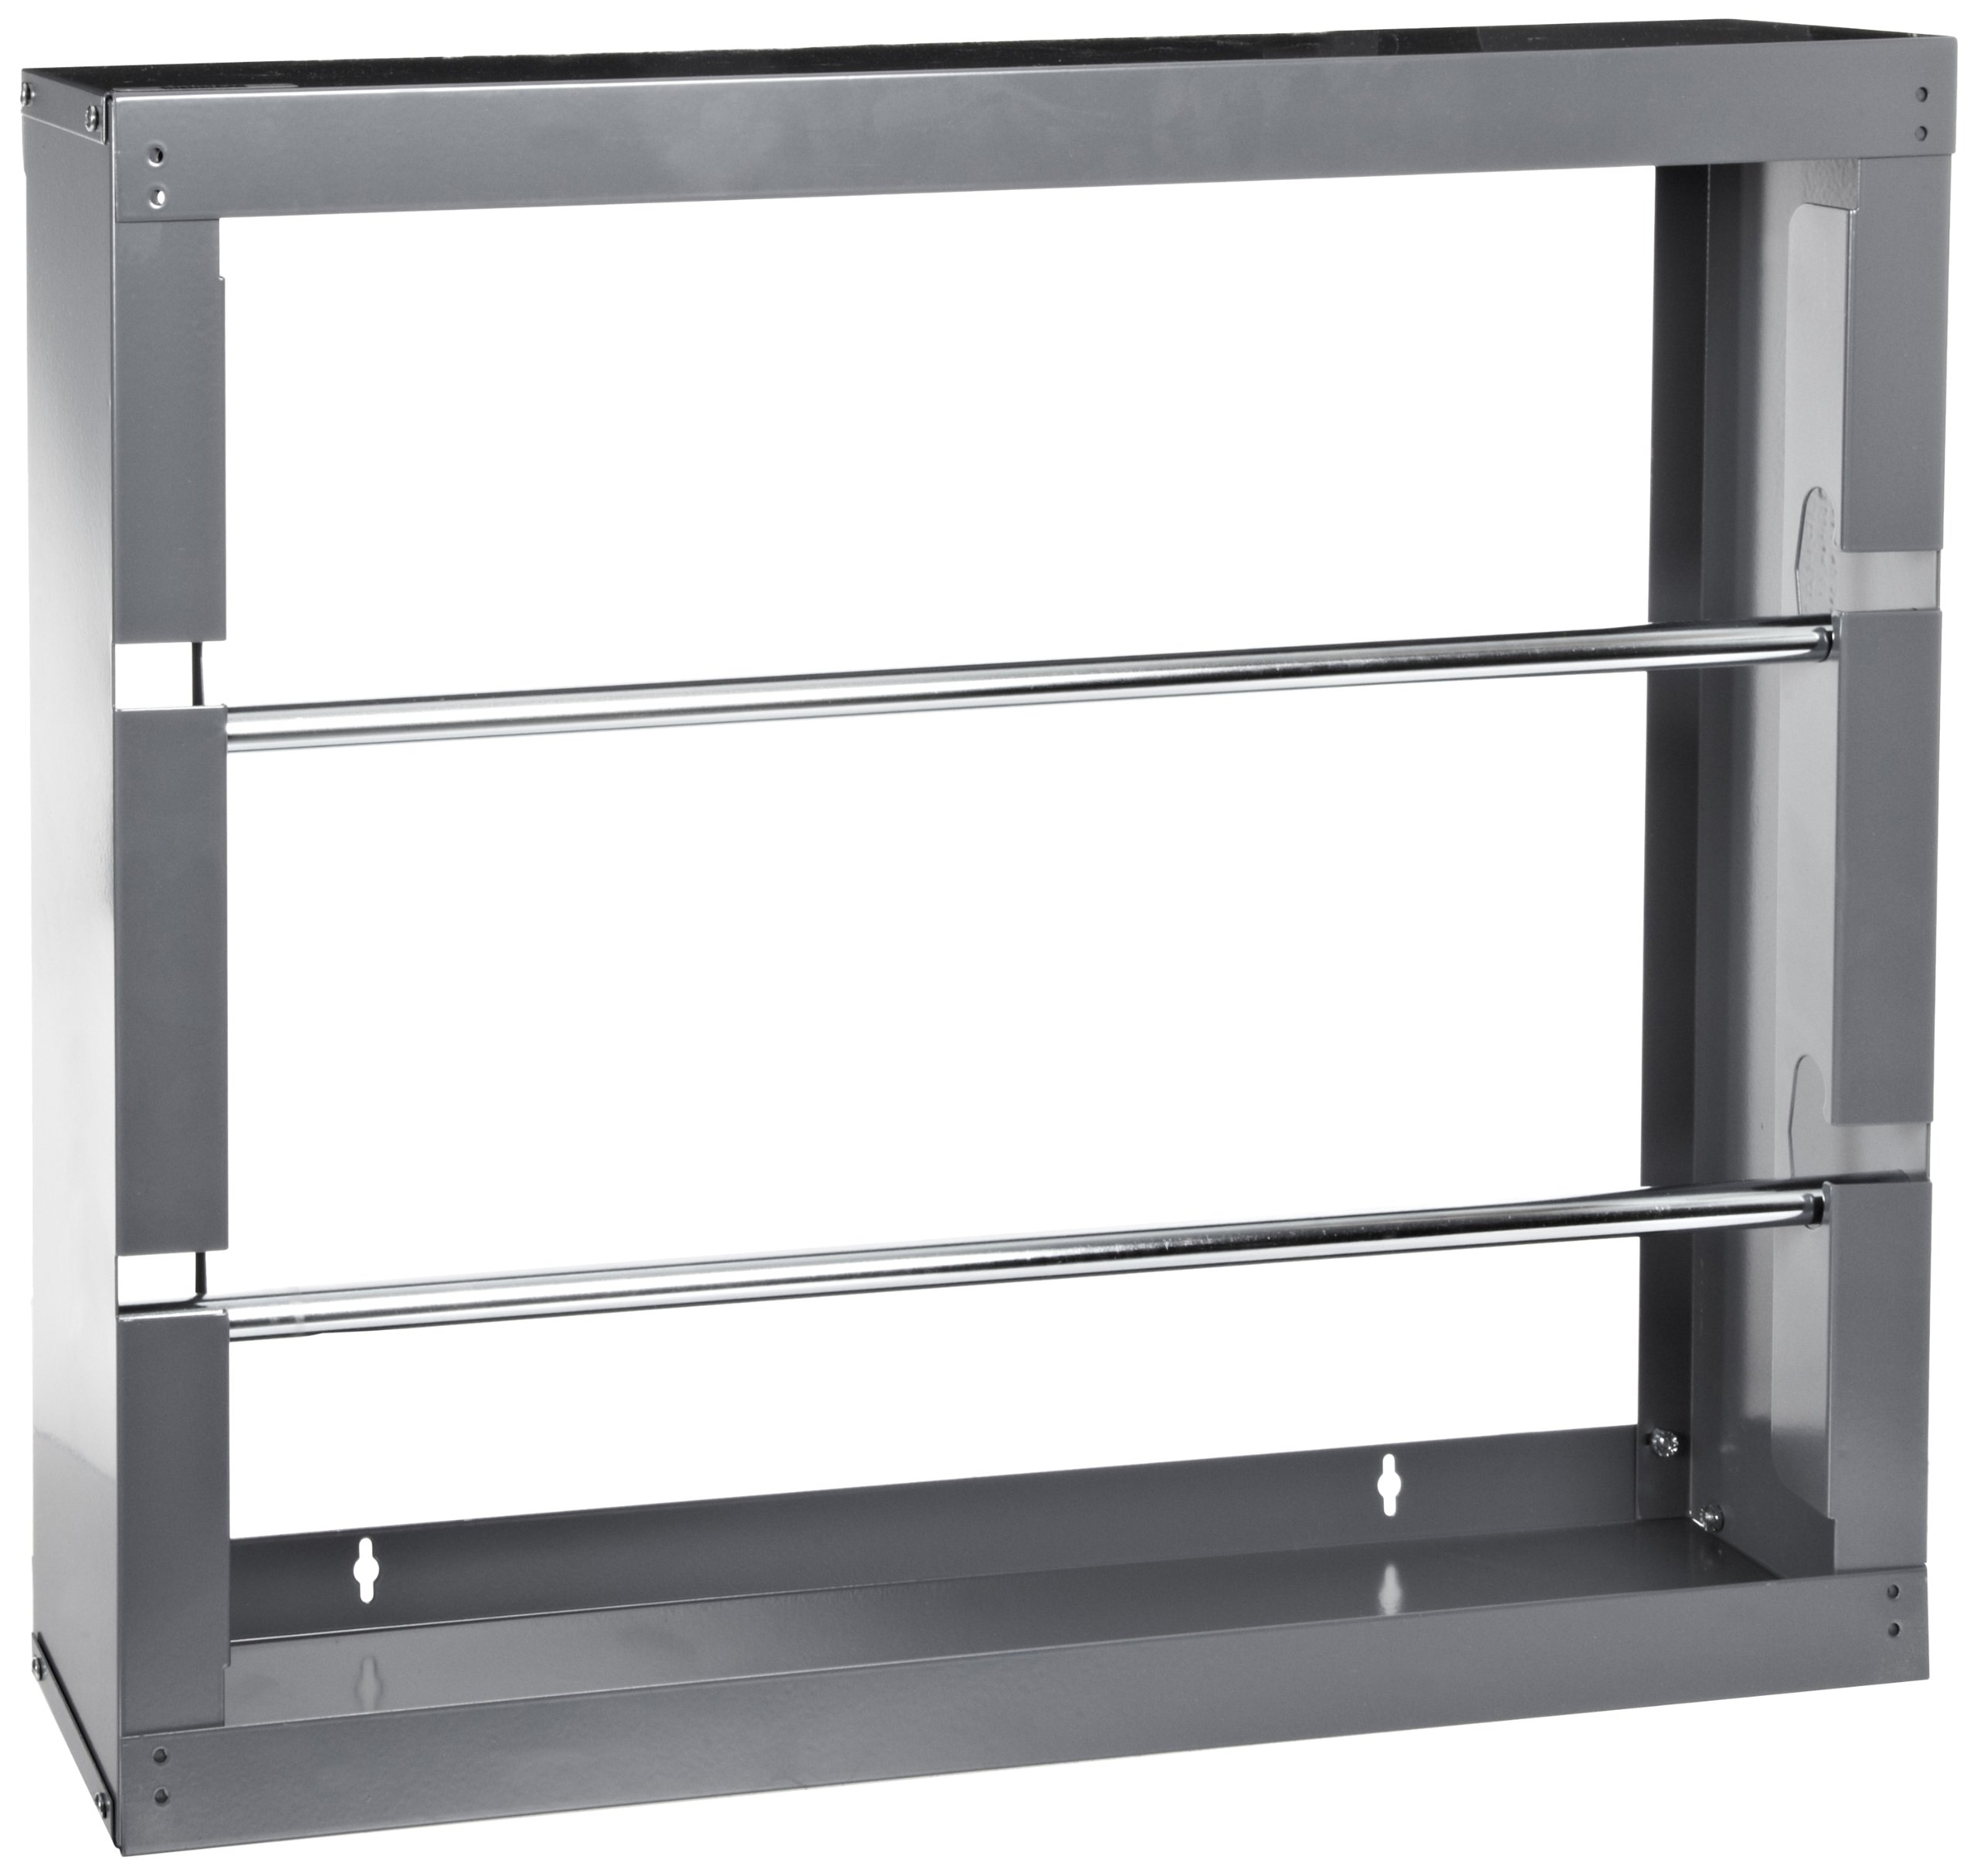 Durham 384-95 Gray Cold-Rolled Steel Wire Spool Rack with 2 Rods, 26-1/8'' Width x 17-7/8'' Height x 6'' Depth